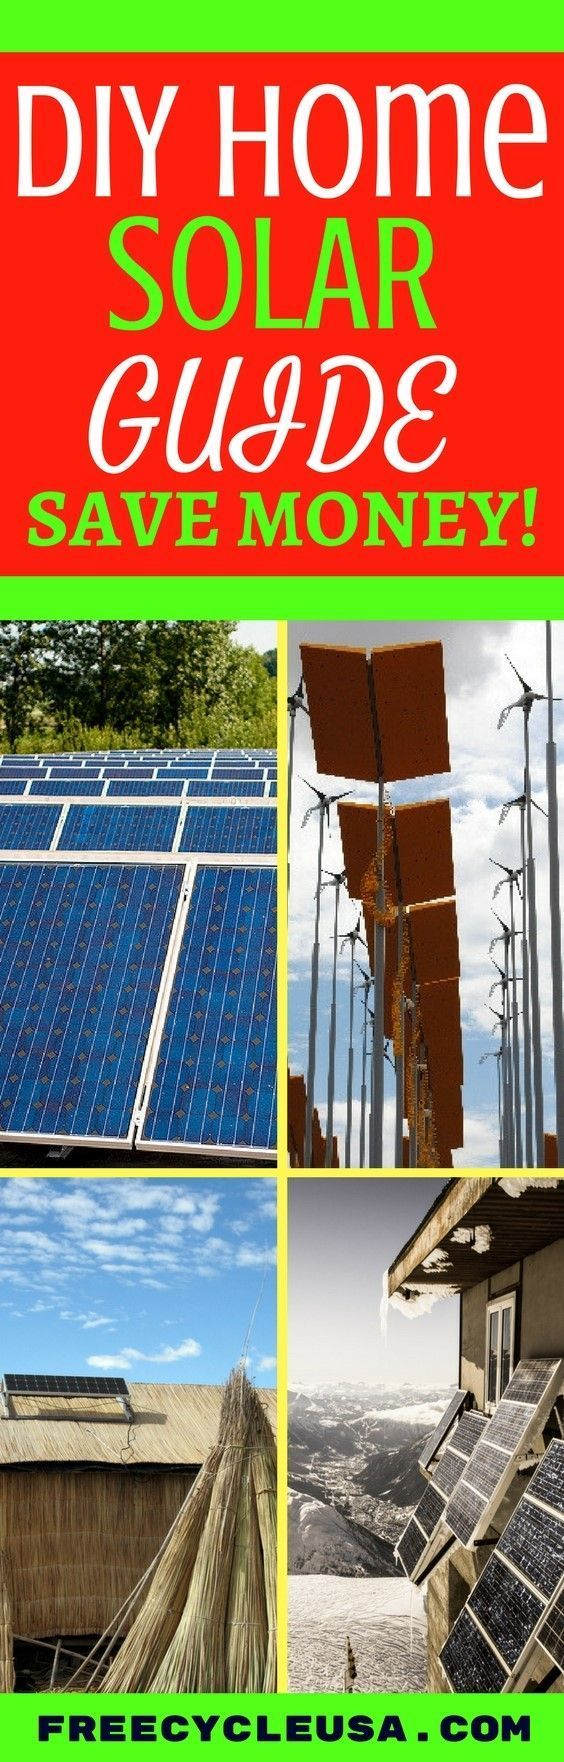 DIY HOME SOLAR ENERGY GUIDE AND WIND POWER GUIDE #HomeEnergySaving